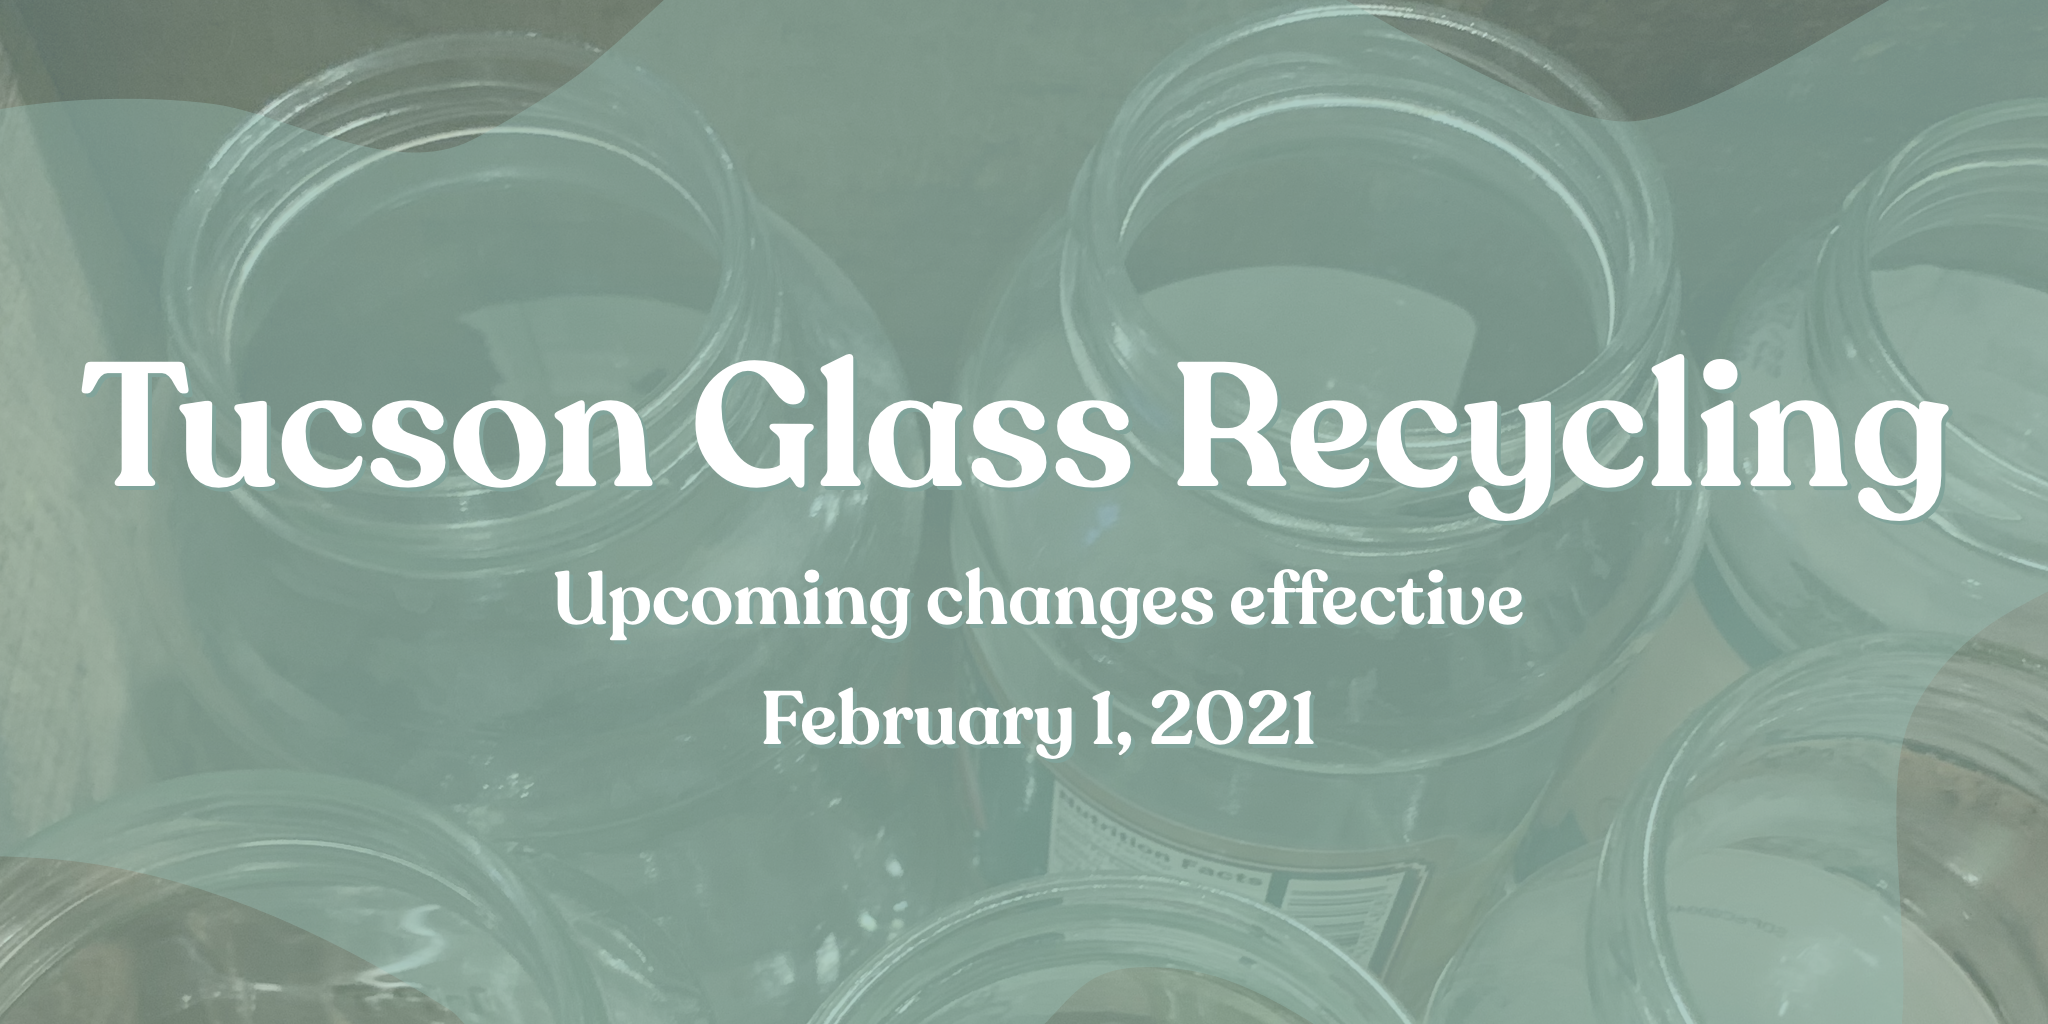 Tucson Glass Recycling Upcoming Changes